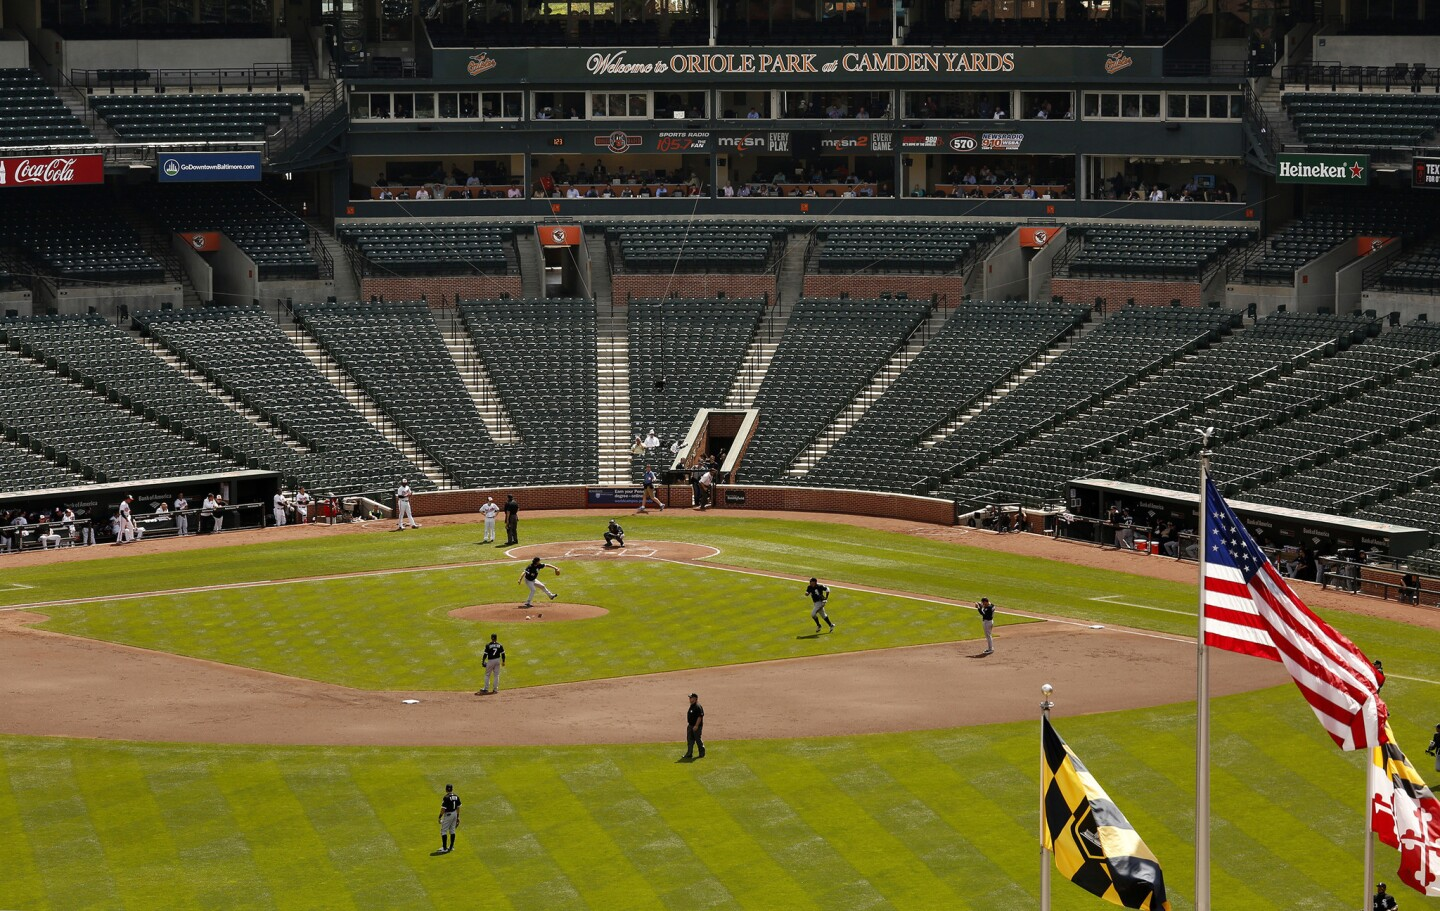 'Ghost game' at Camden Yards